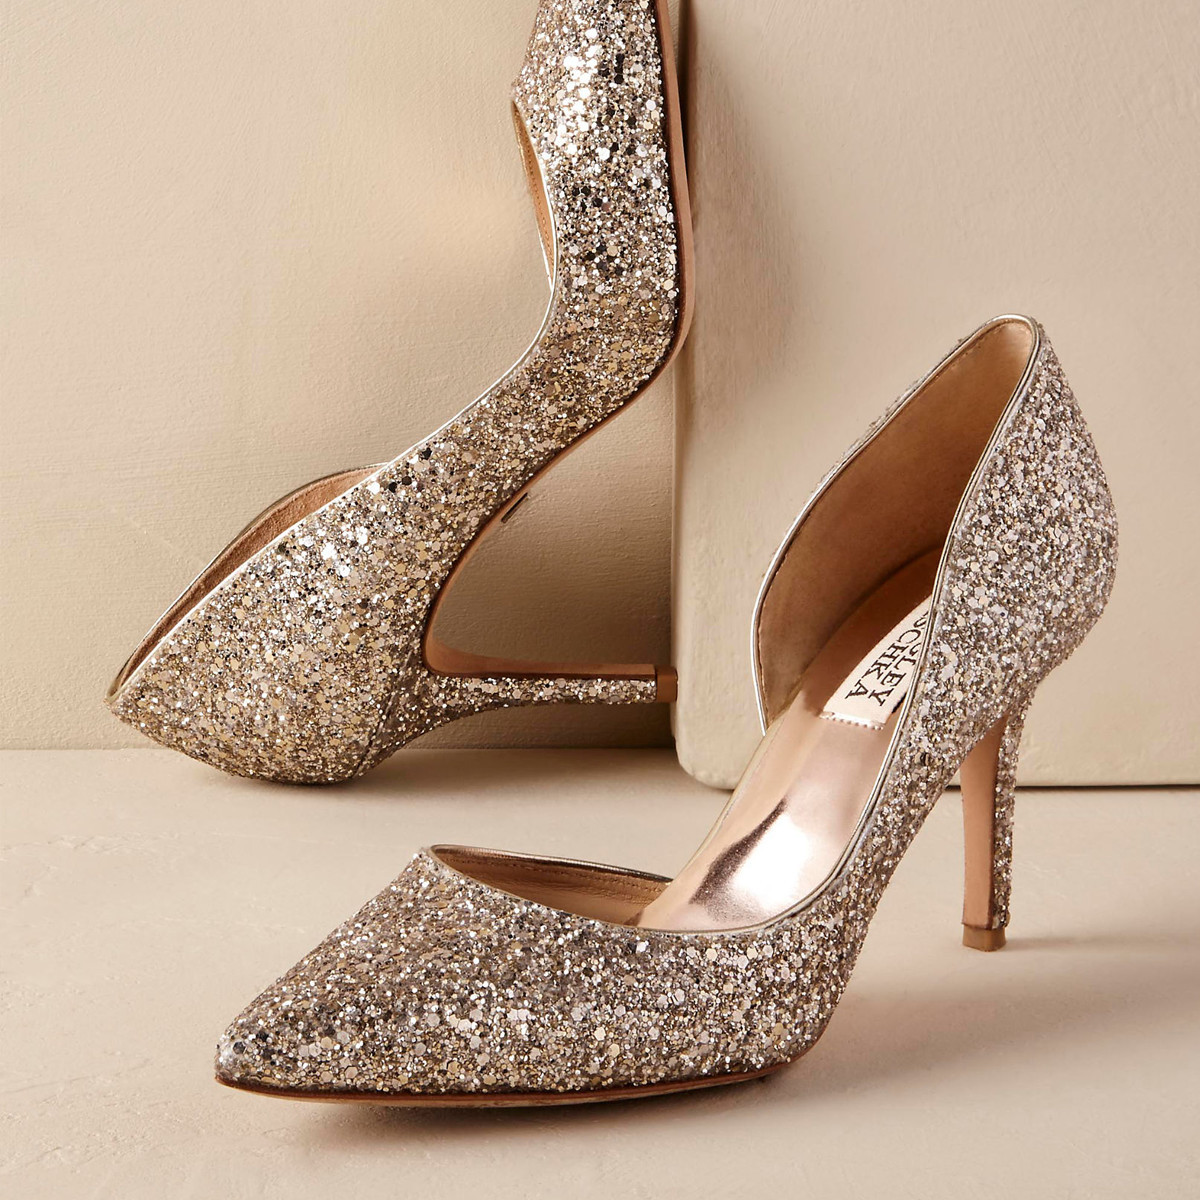 Staged photo of glitter heels photo